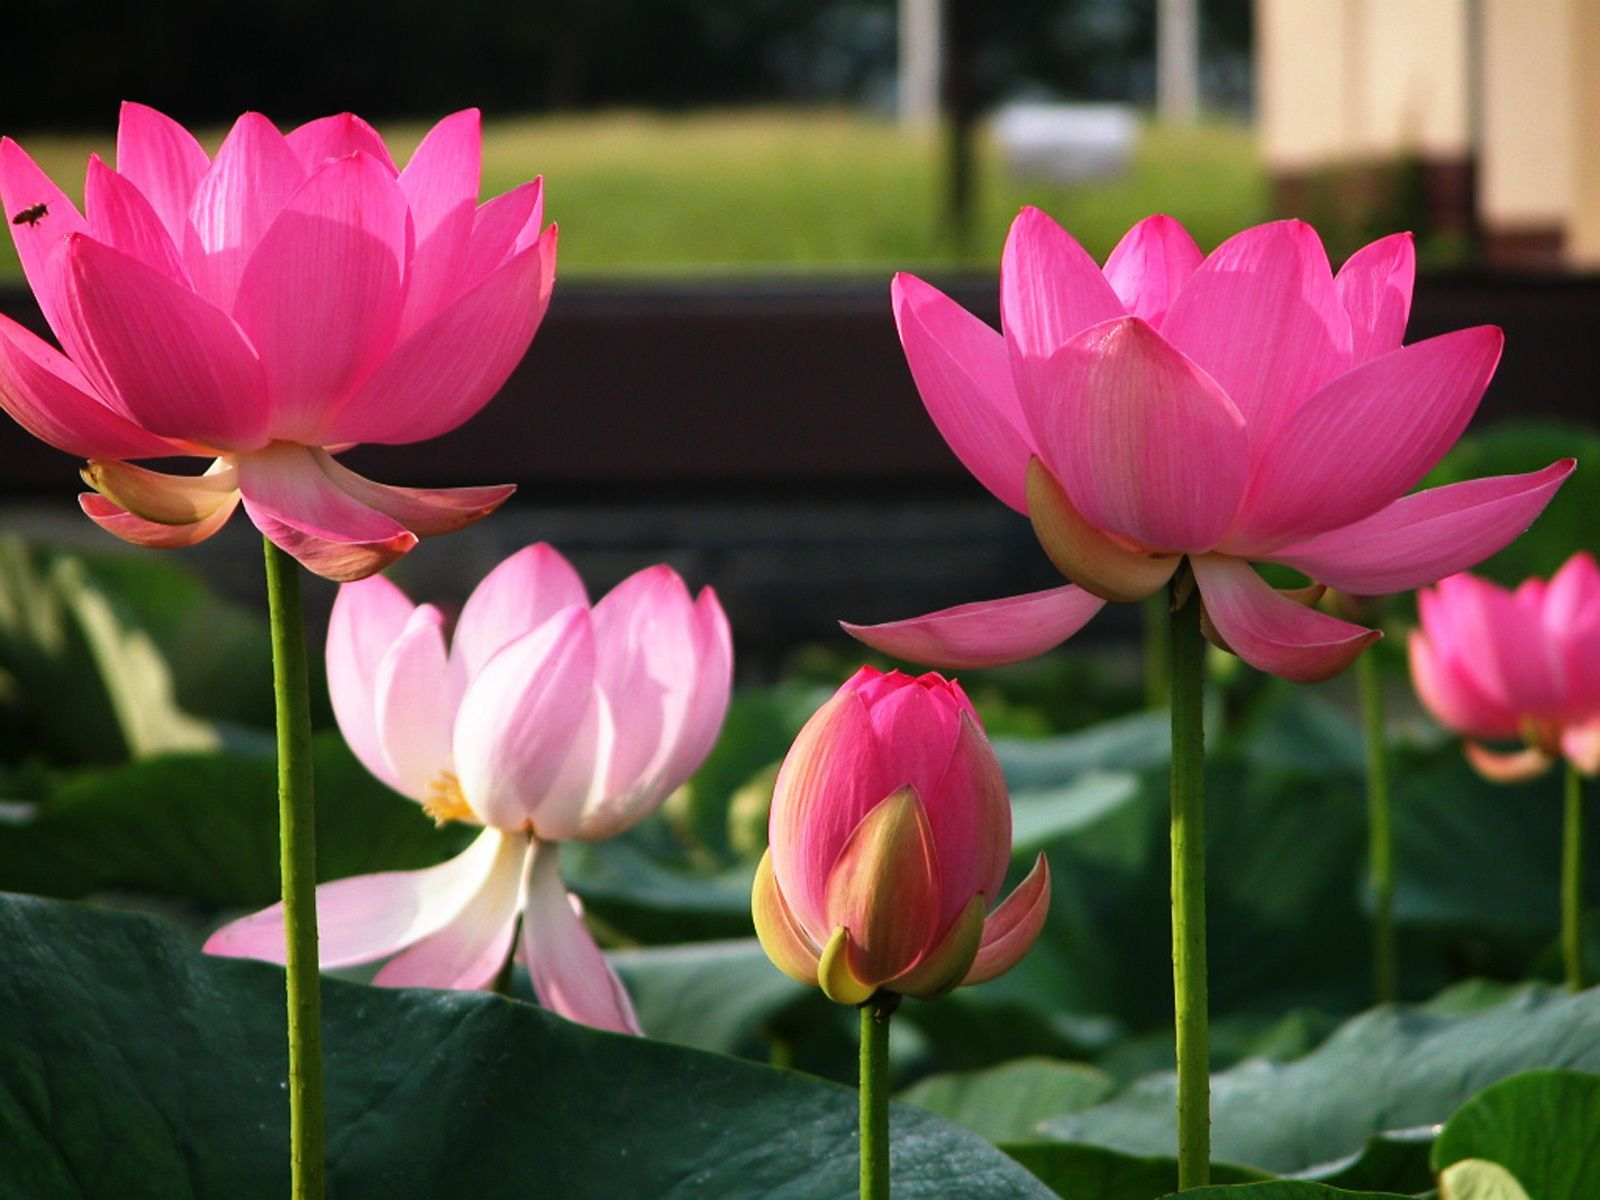 Red Lotus Flower Wallpaper 24.jpg 1,600×1,200 pixels | Louts flower ...